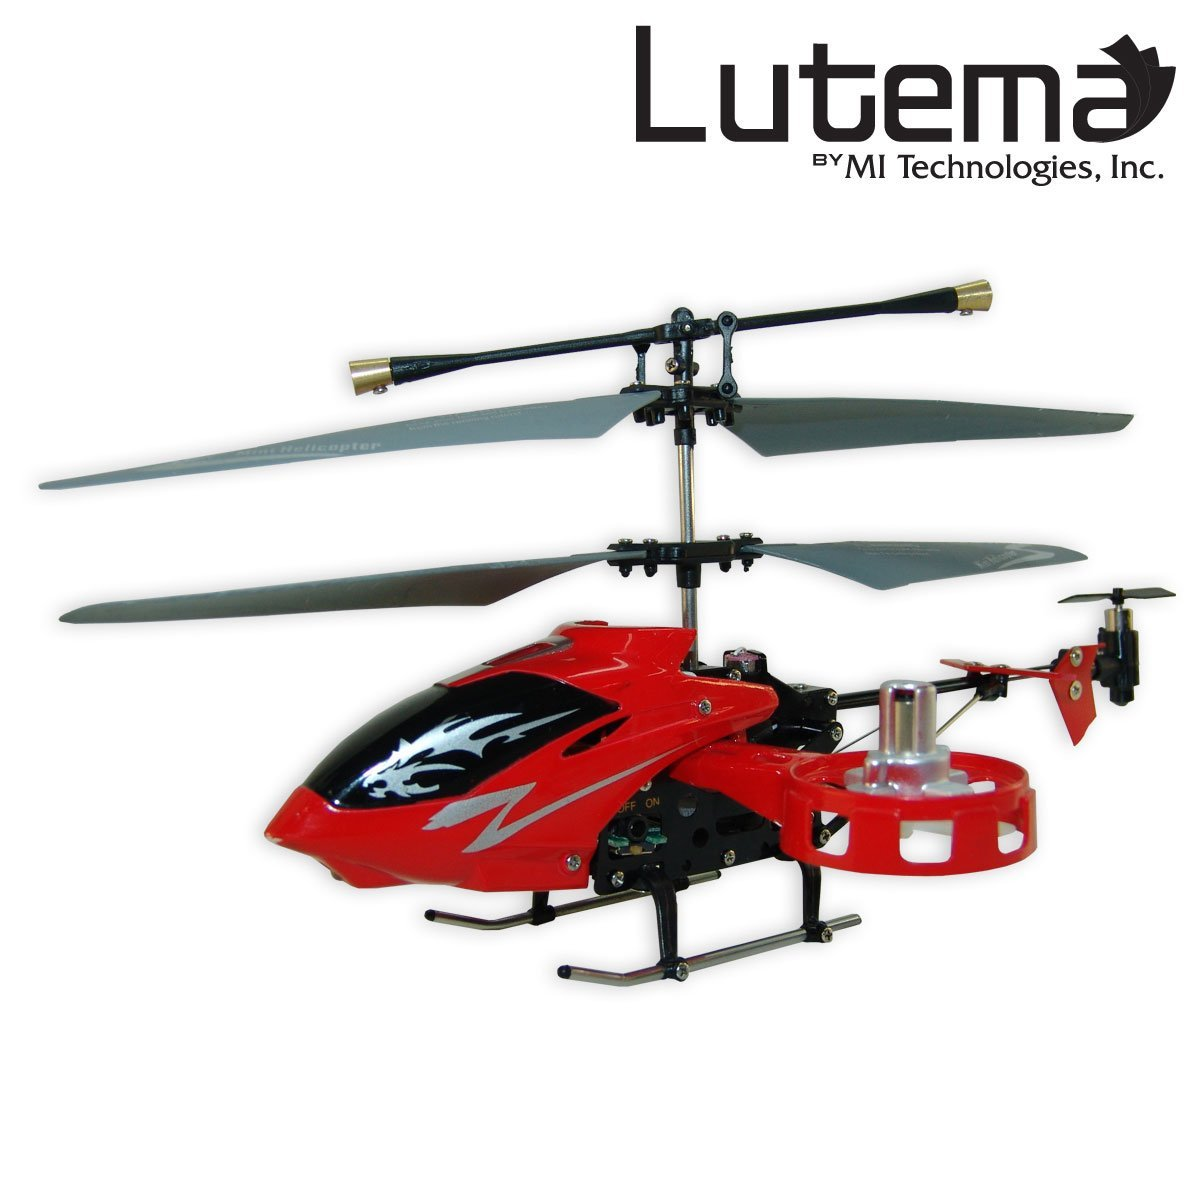 Dining Room Furniture Deals Lutema Avatar Hovercraft 4ch Remote Control Helicopter For